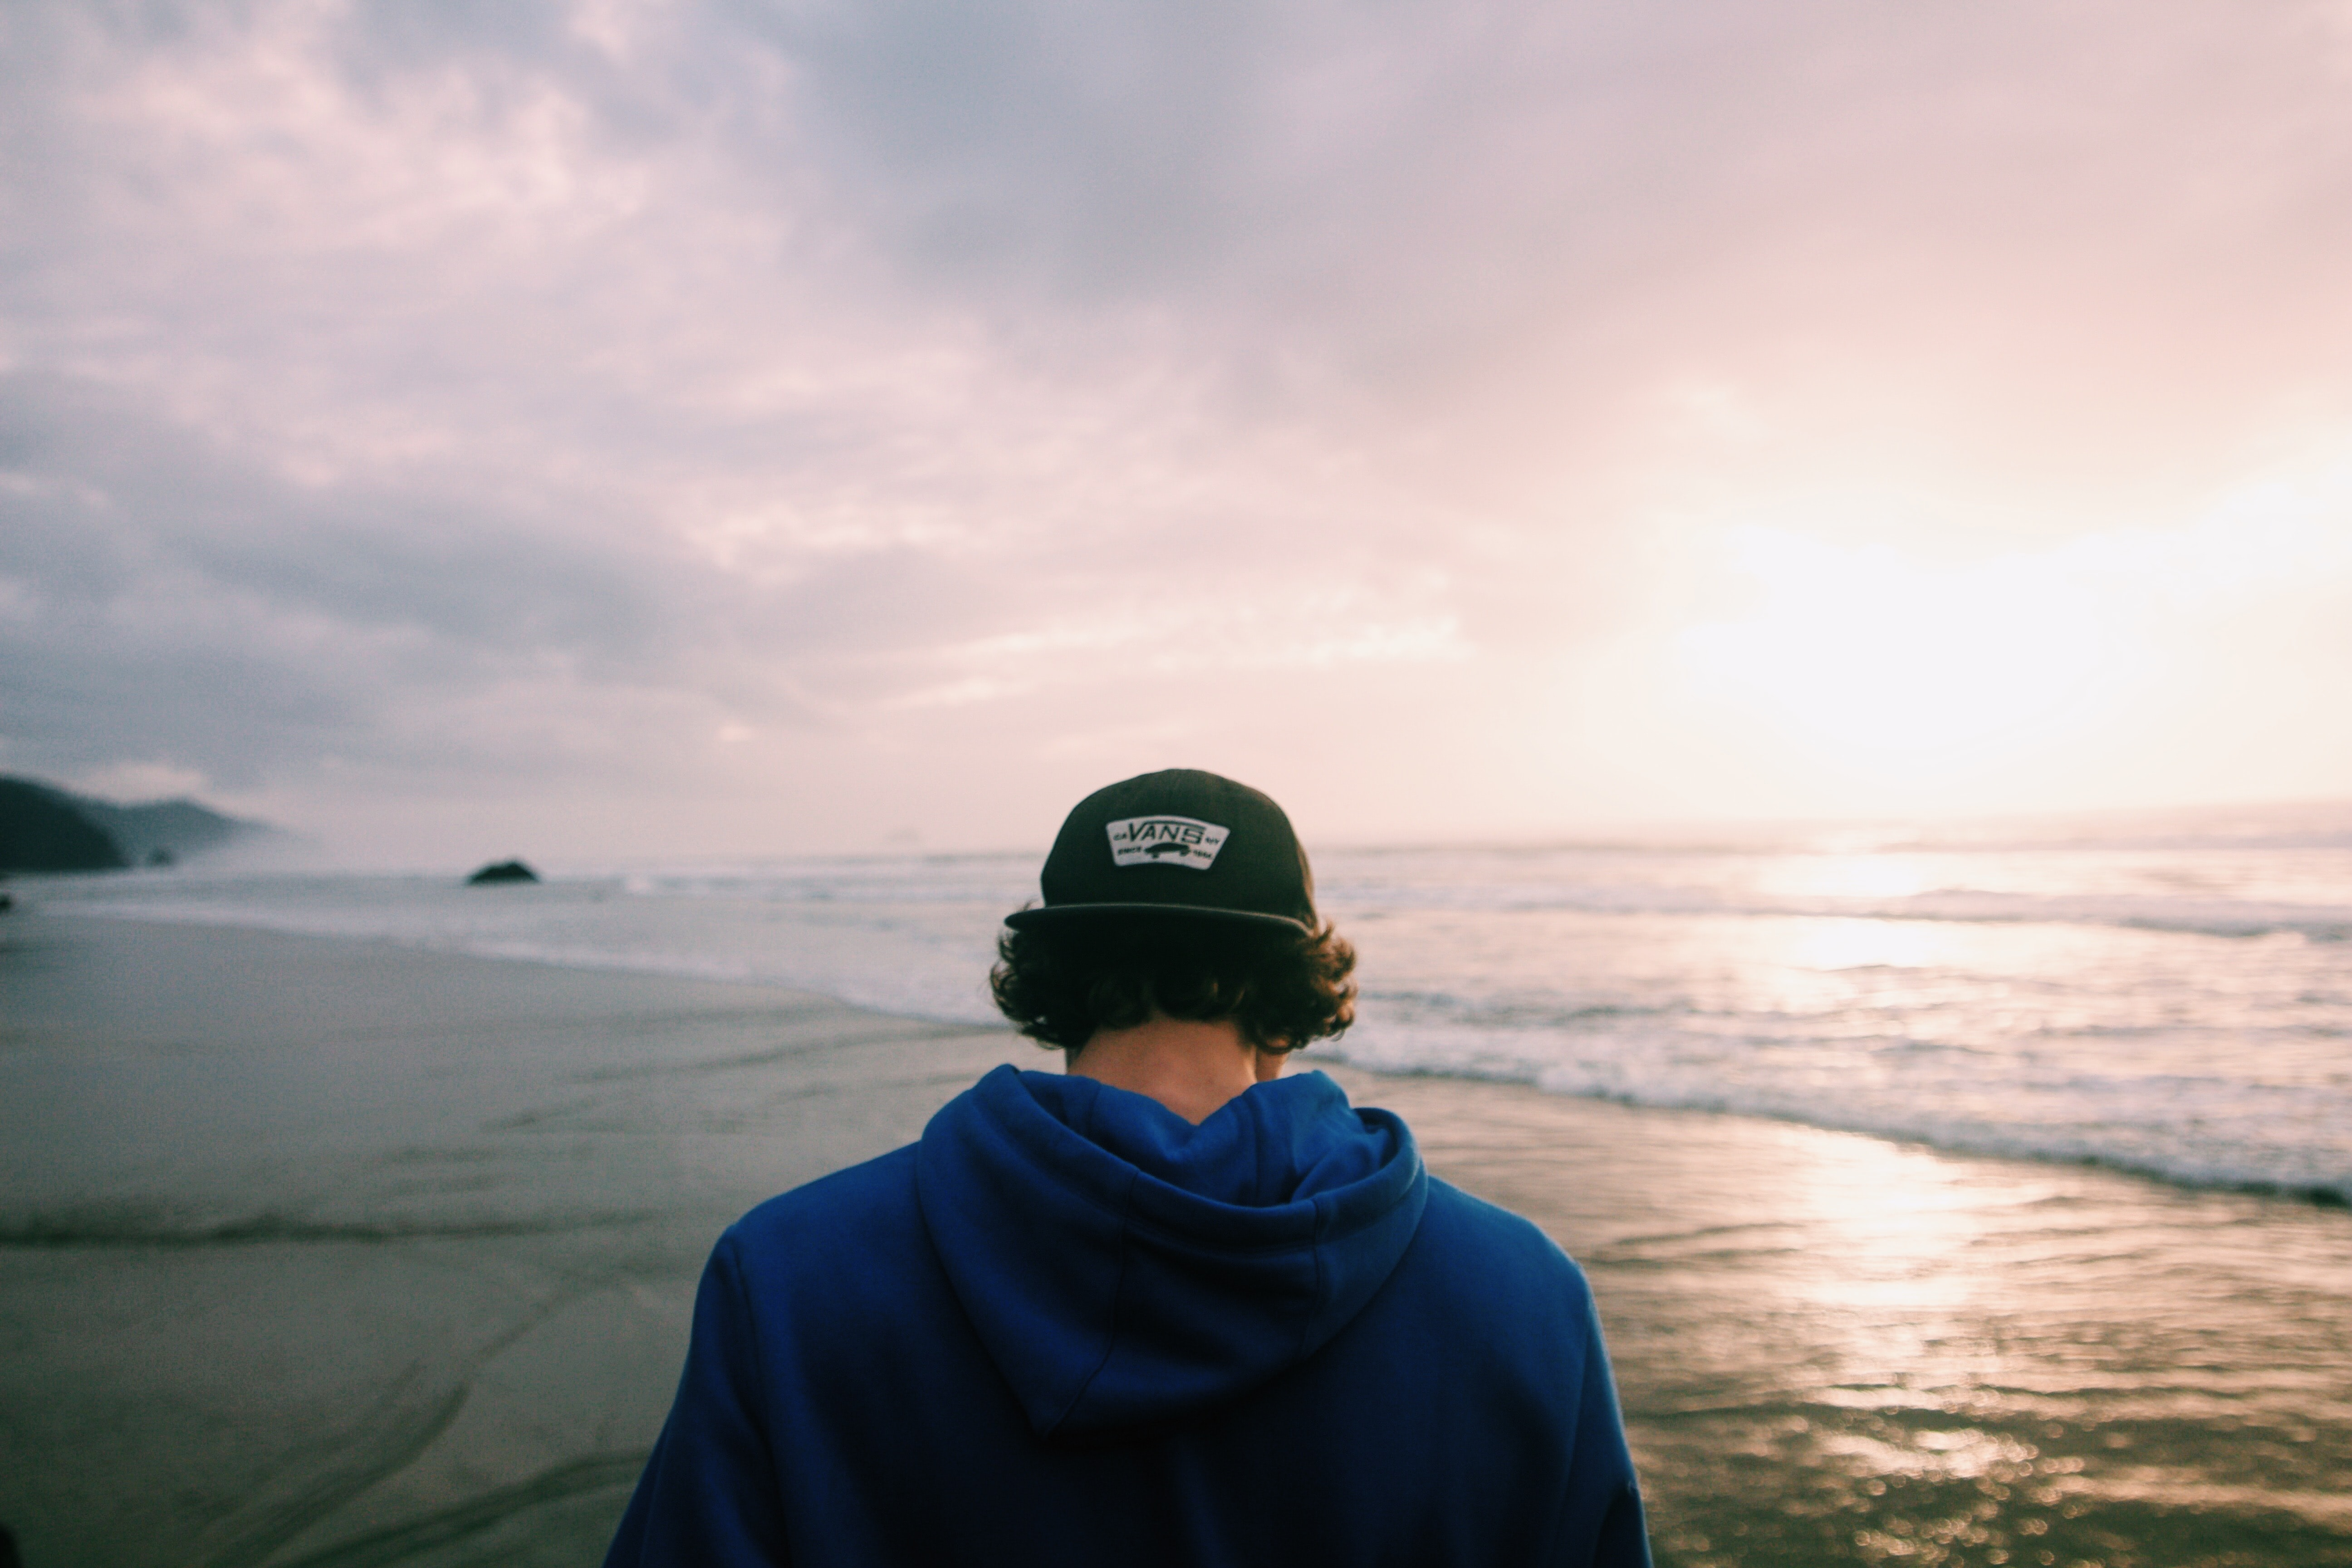 Walking behind a man in a baseball hat on the ocean shore